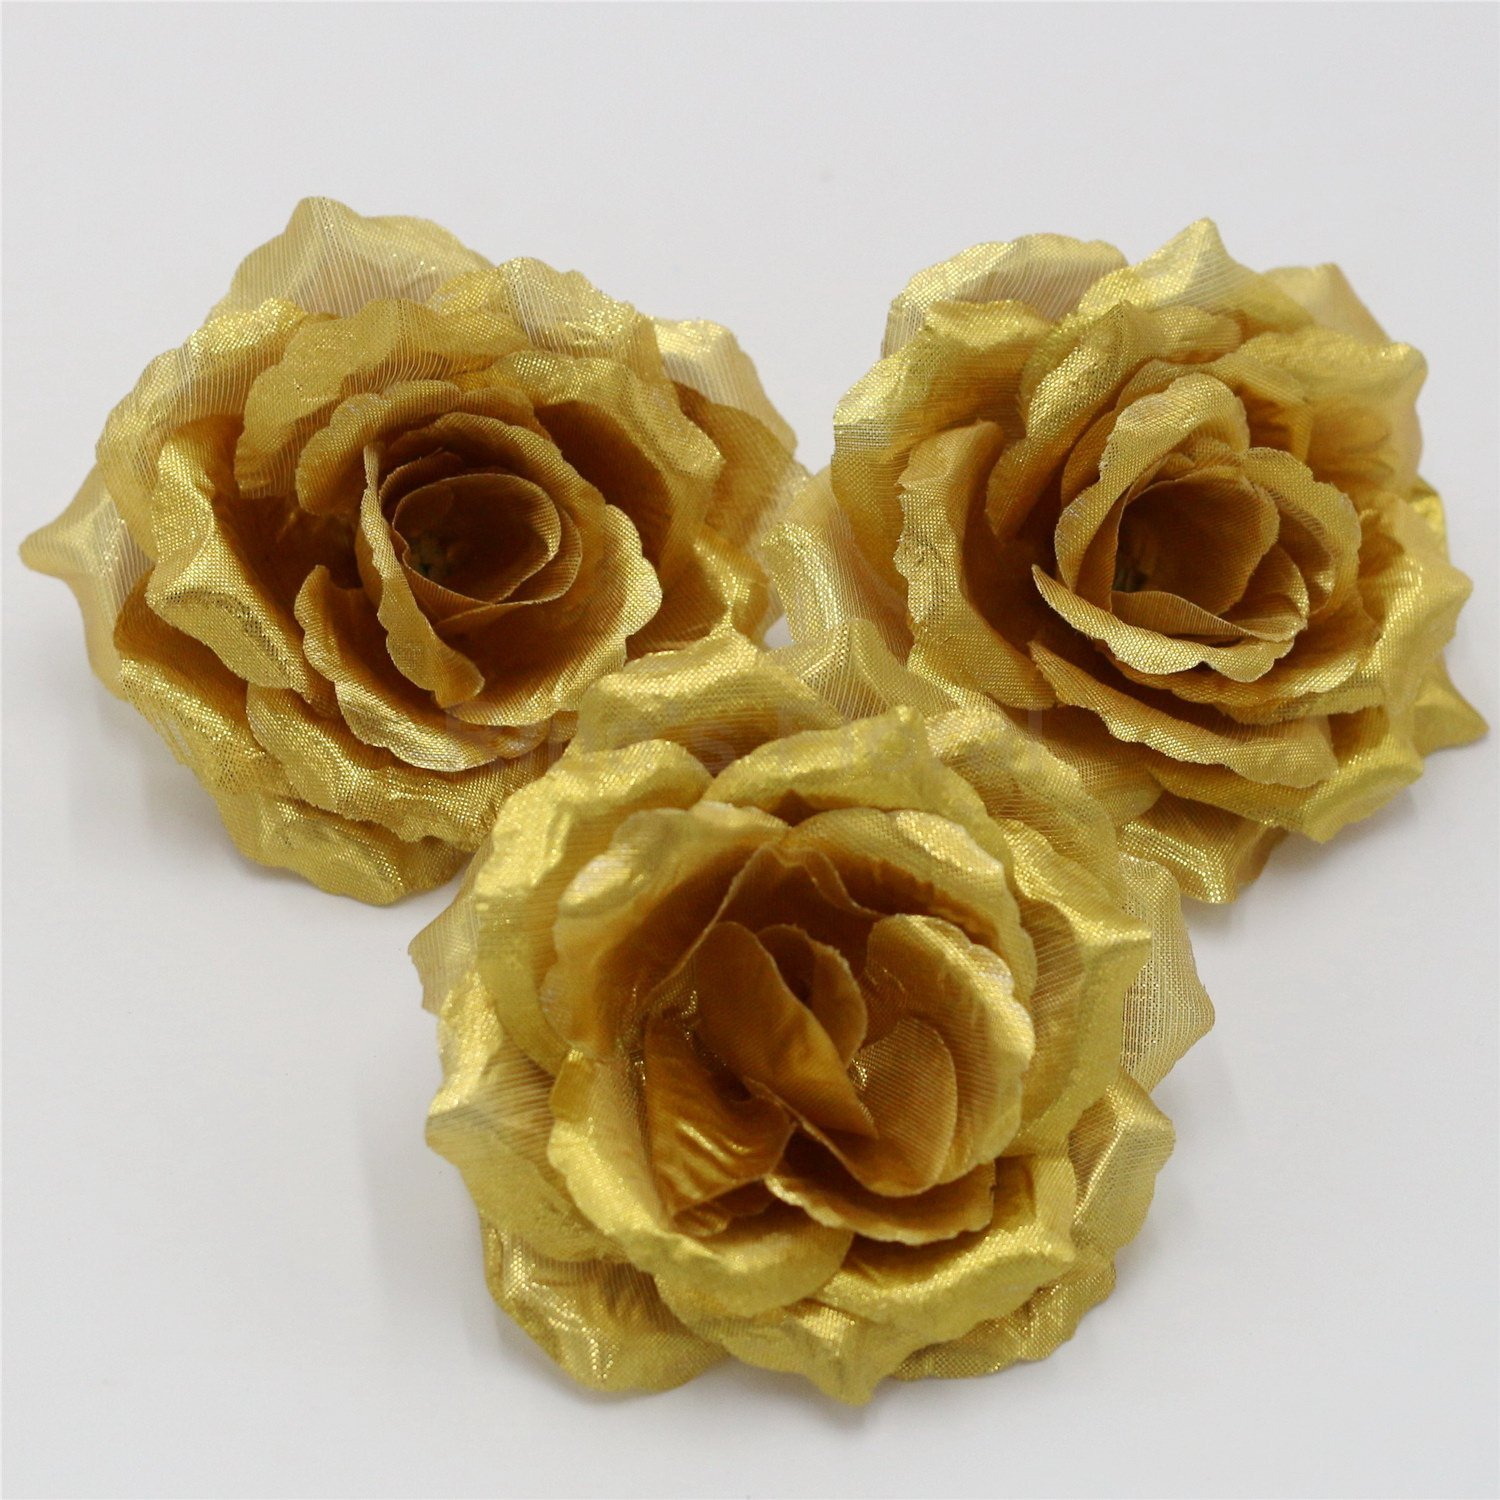 Silk Flowers Wholesale 100 Artificial Silk Rose Heads Bulk Flowers 10cm For Flower Wall Kissing Balls Wedding Supplies (Gold)